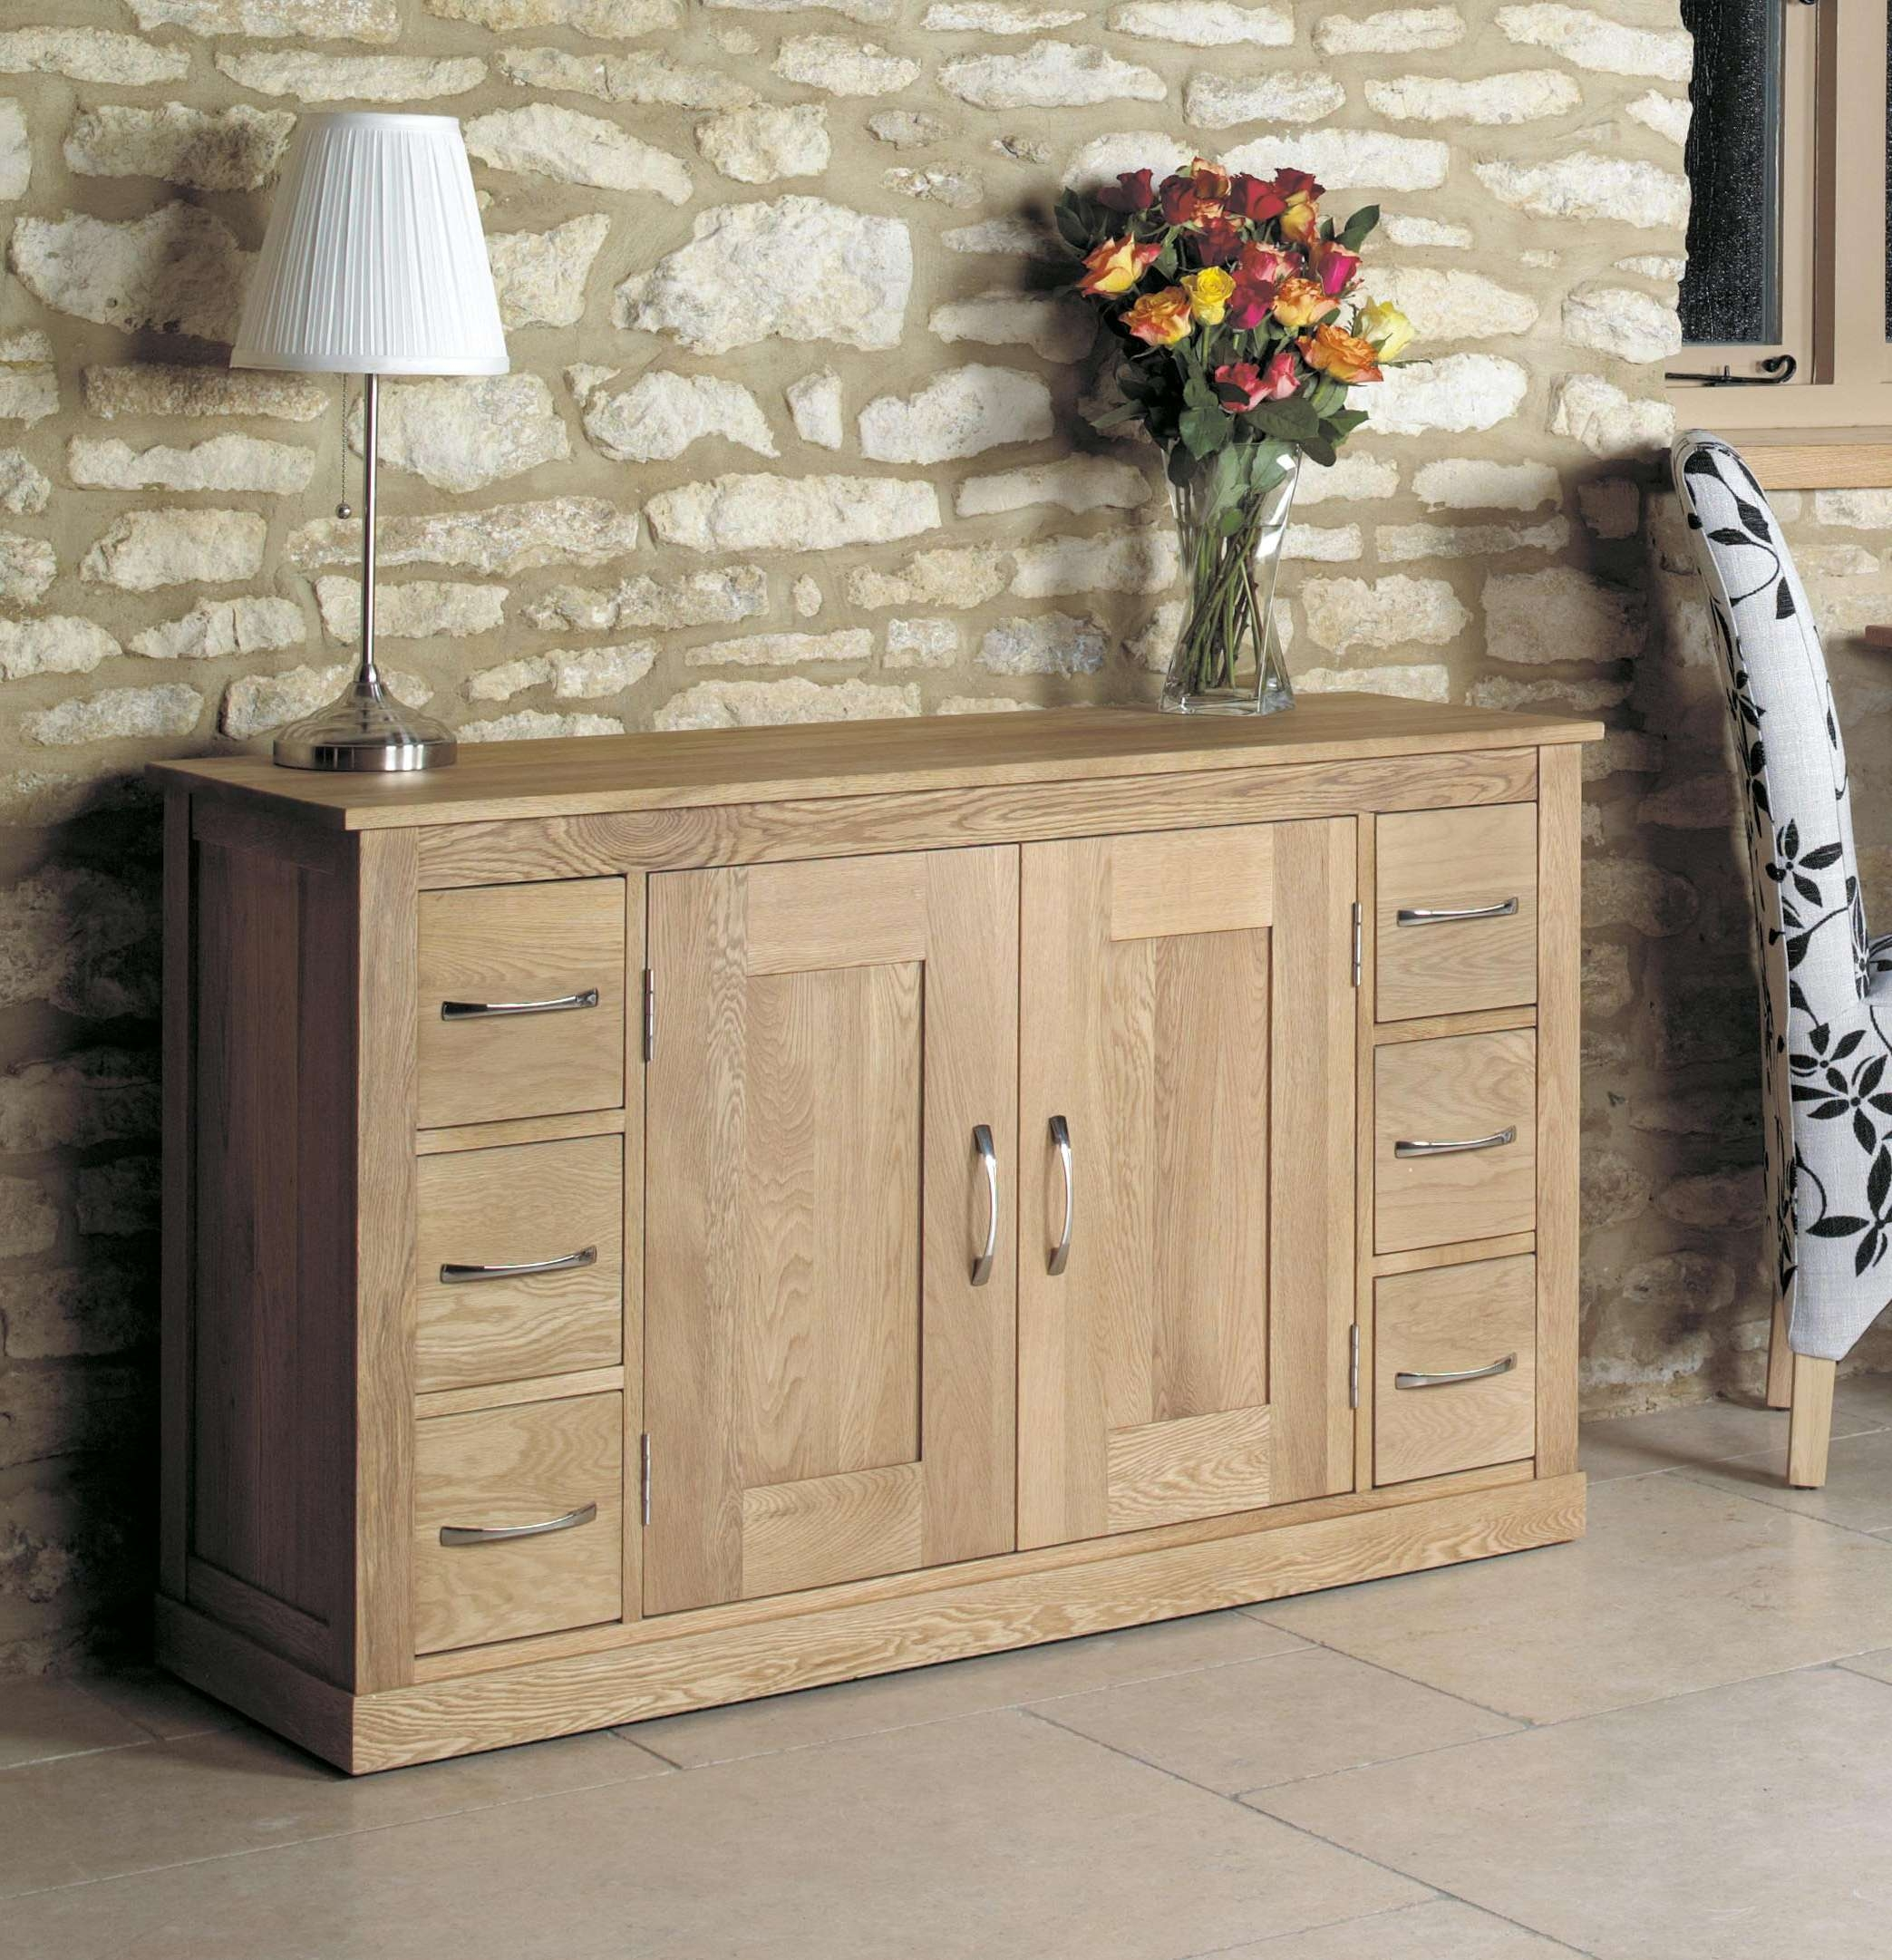 Mobel Oak Six Drawer Sideboard (cor02b) Within Sideboards With Drawers (View 15 of 20)